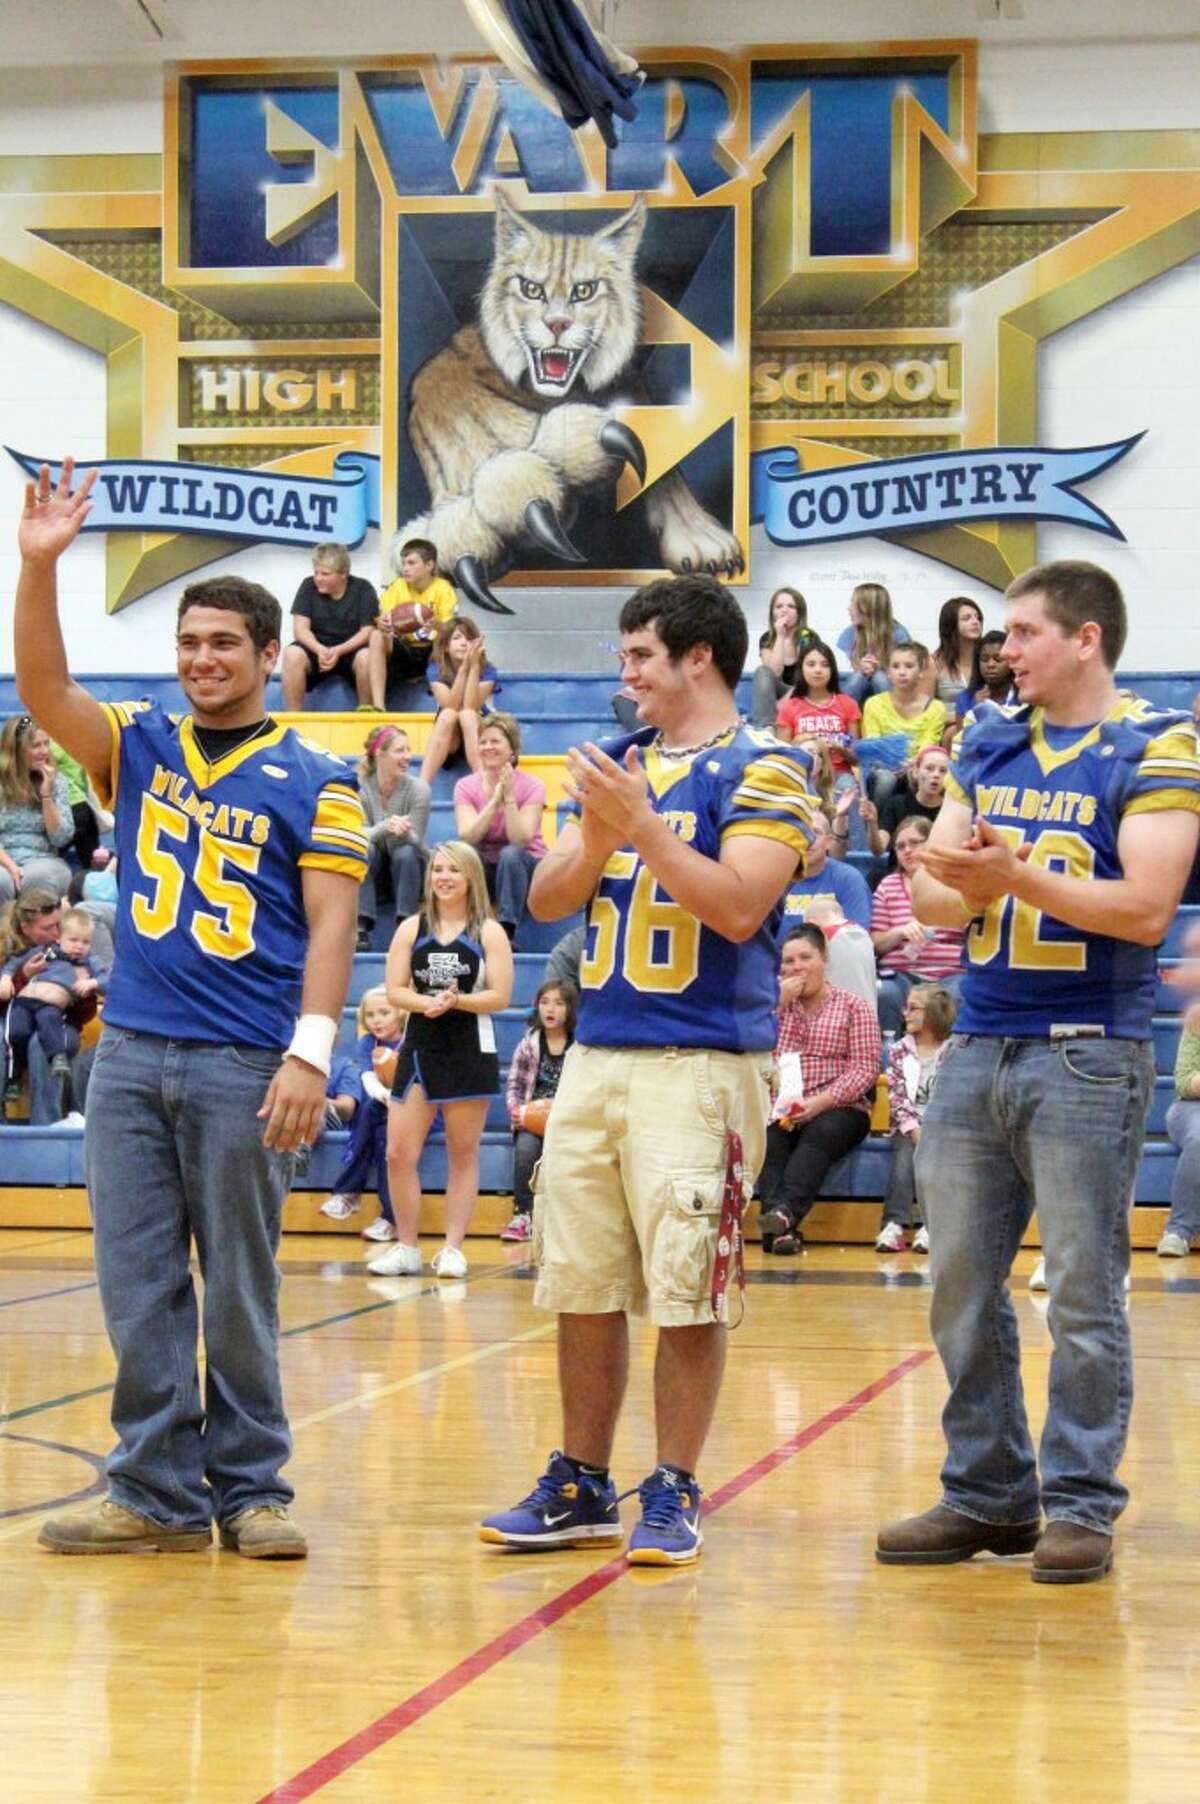 SCHOOL PRIDE: Evart High School football players are announced to district students and staff at the school's Wildcat Pride Night Sept. 26.